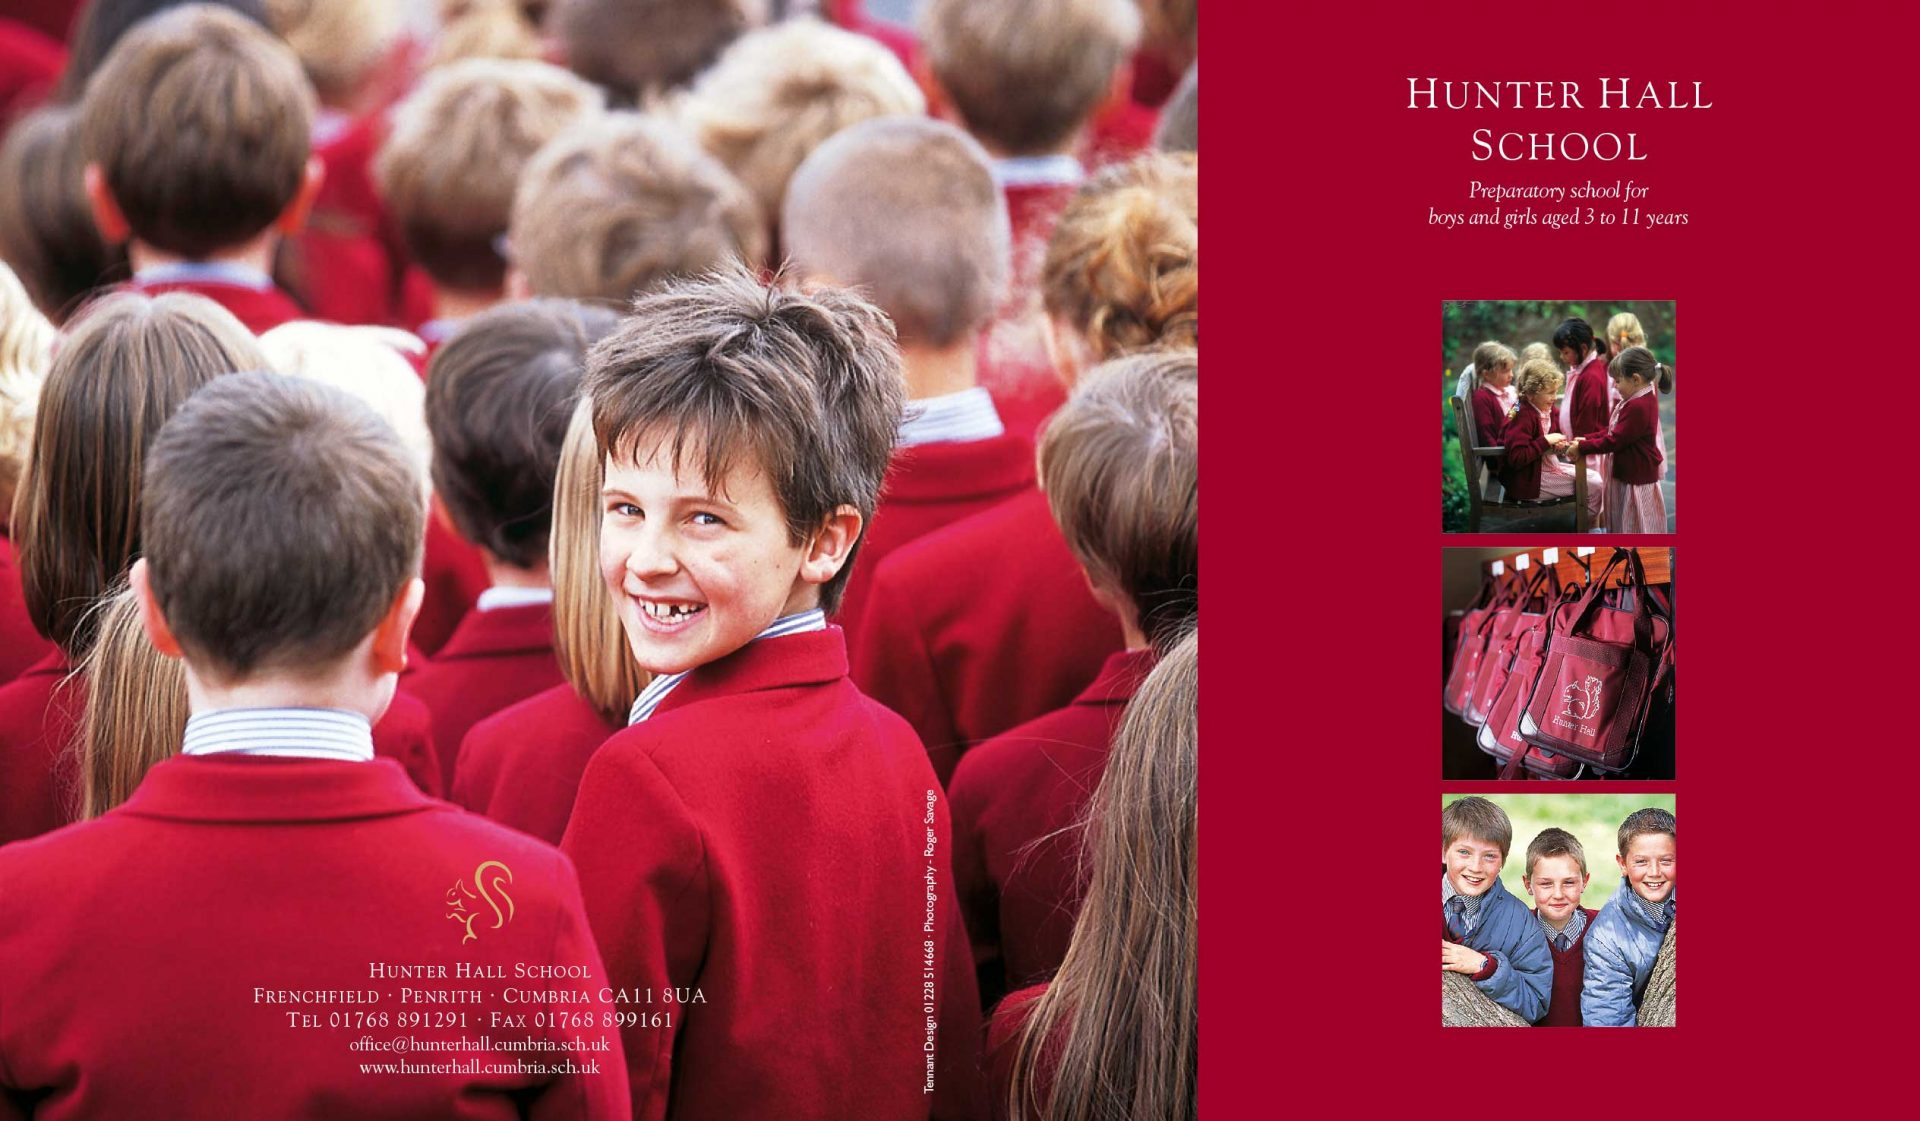 School Prospectus design - Hunter Hall - front cover